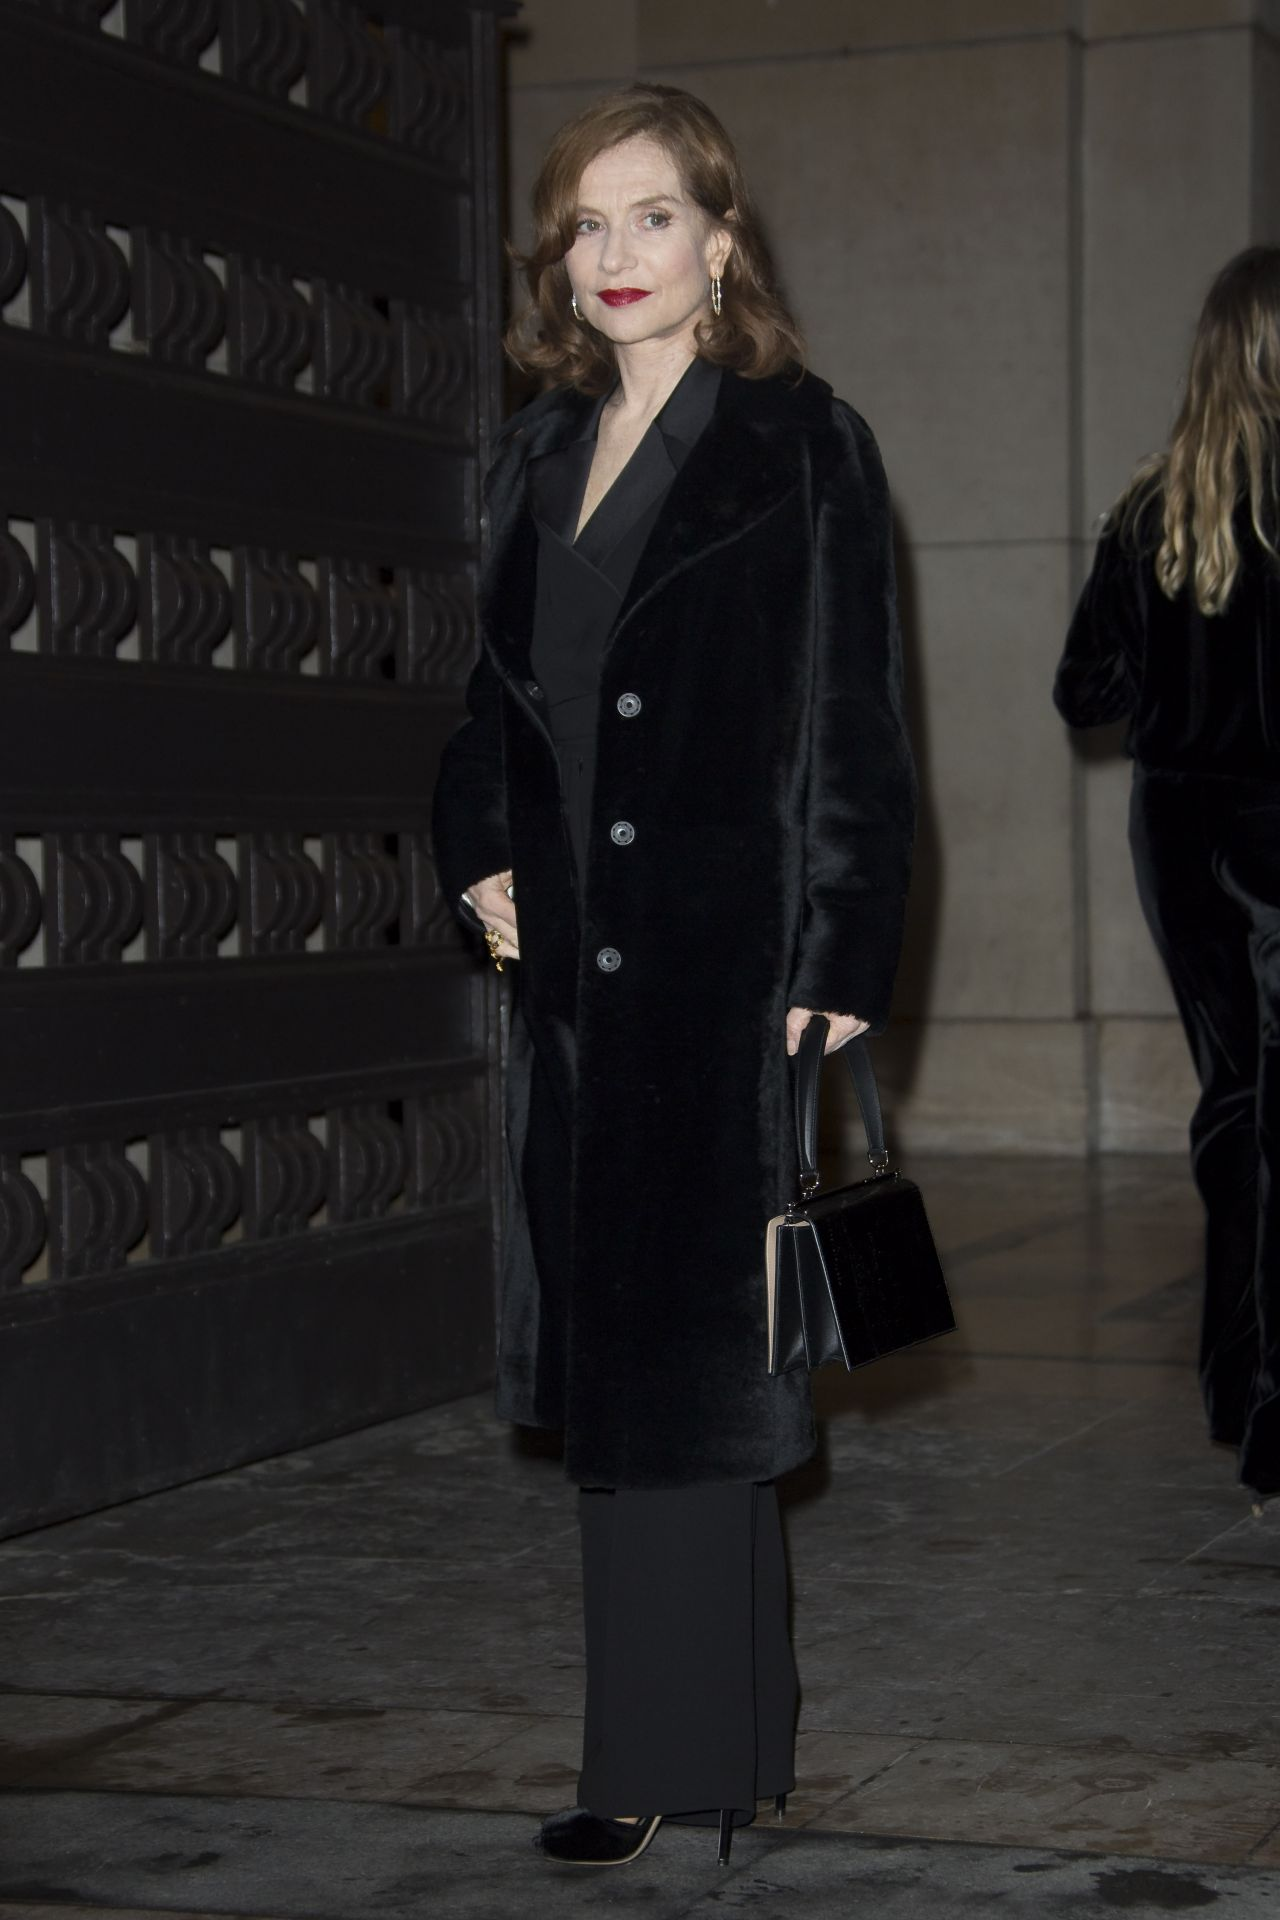 http://celebmafia.com/wp-content/uploads/2018/01/isabelle-huppert-giorgio-armani-prive-show-spring-summer-2018-in-paris-0.jpg